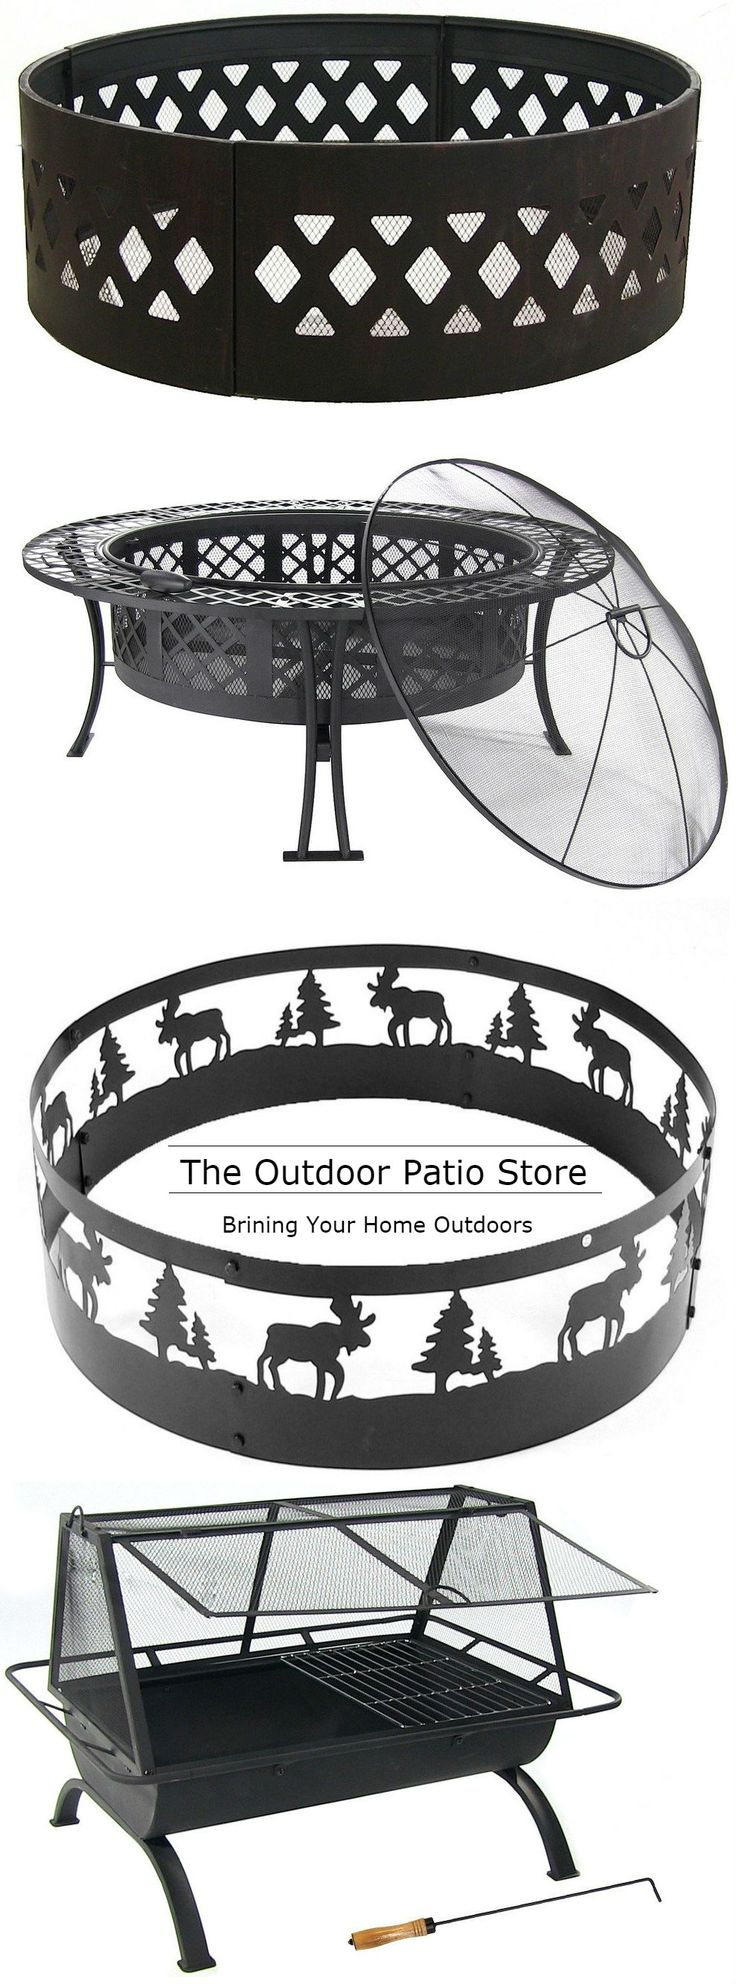 Trendy and Durable.  The Outdoor Patio Store